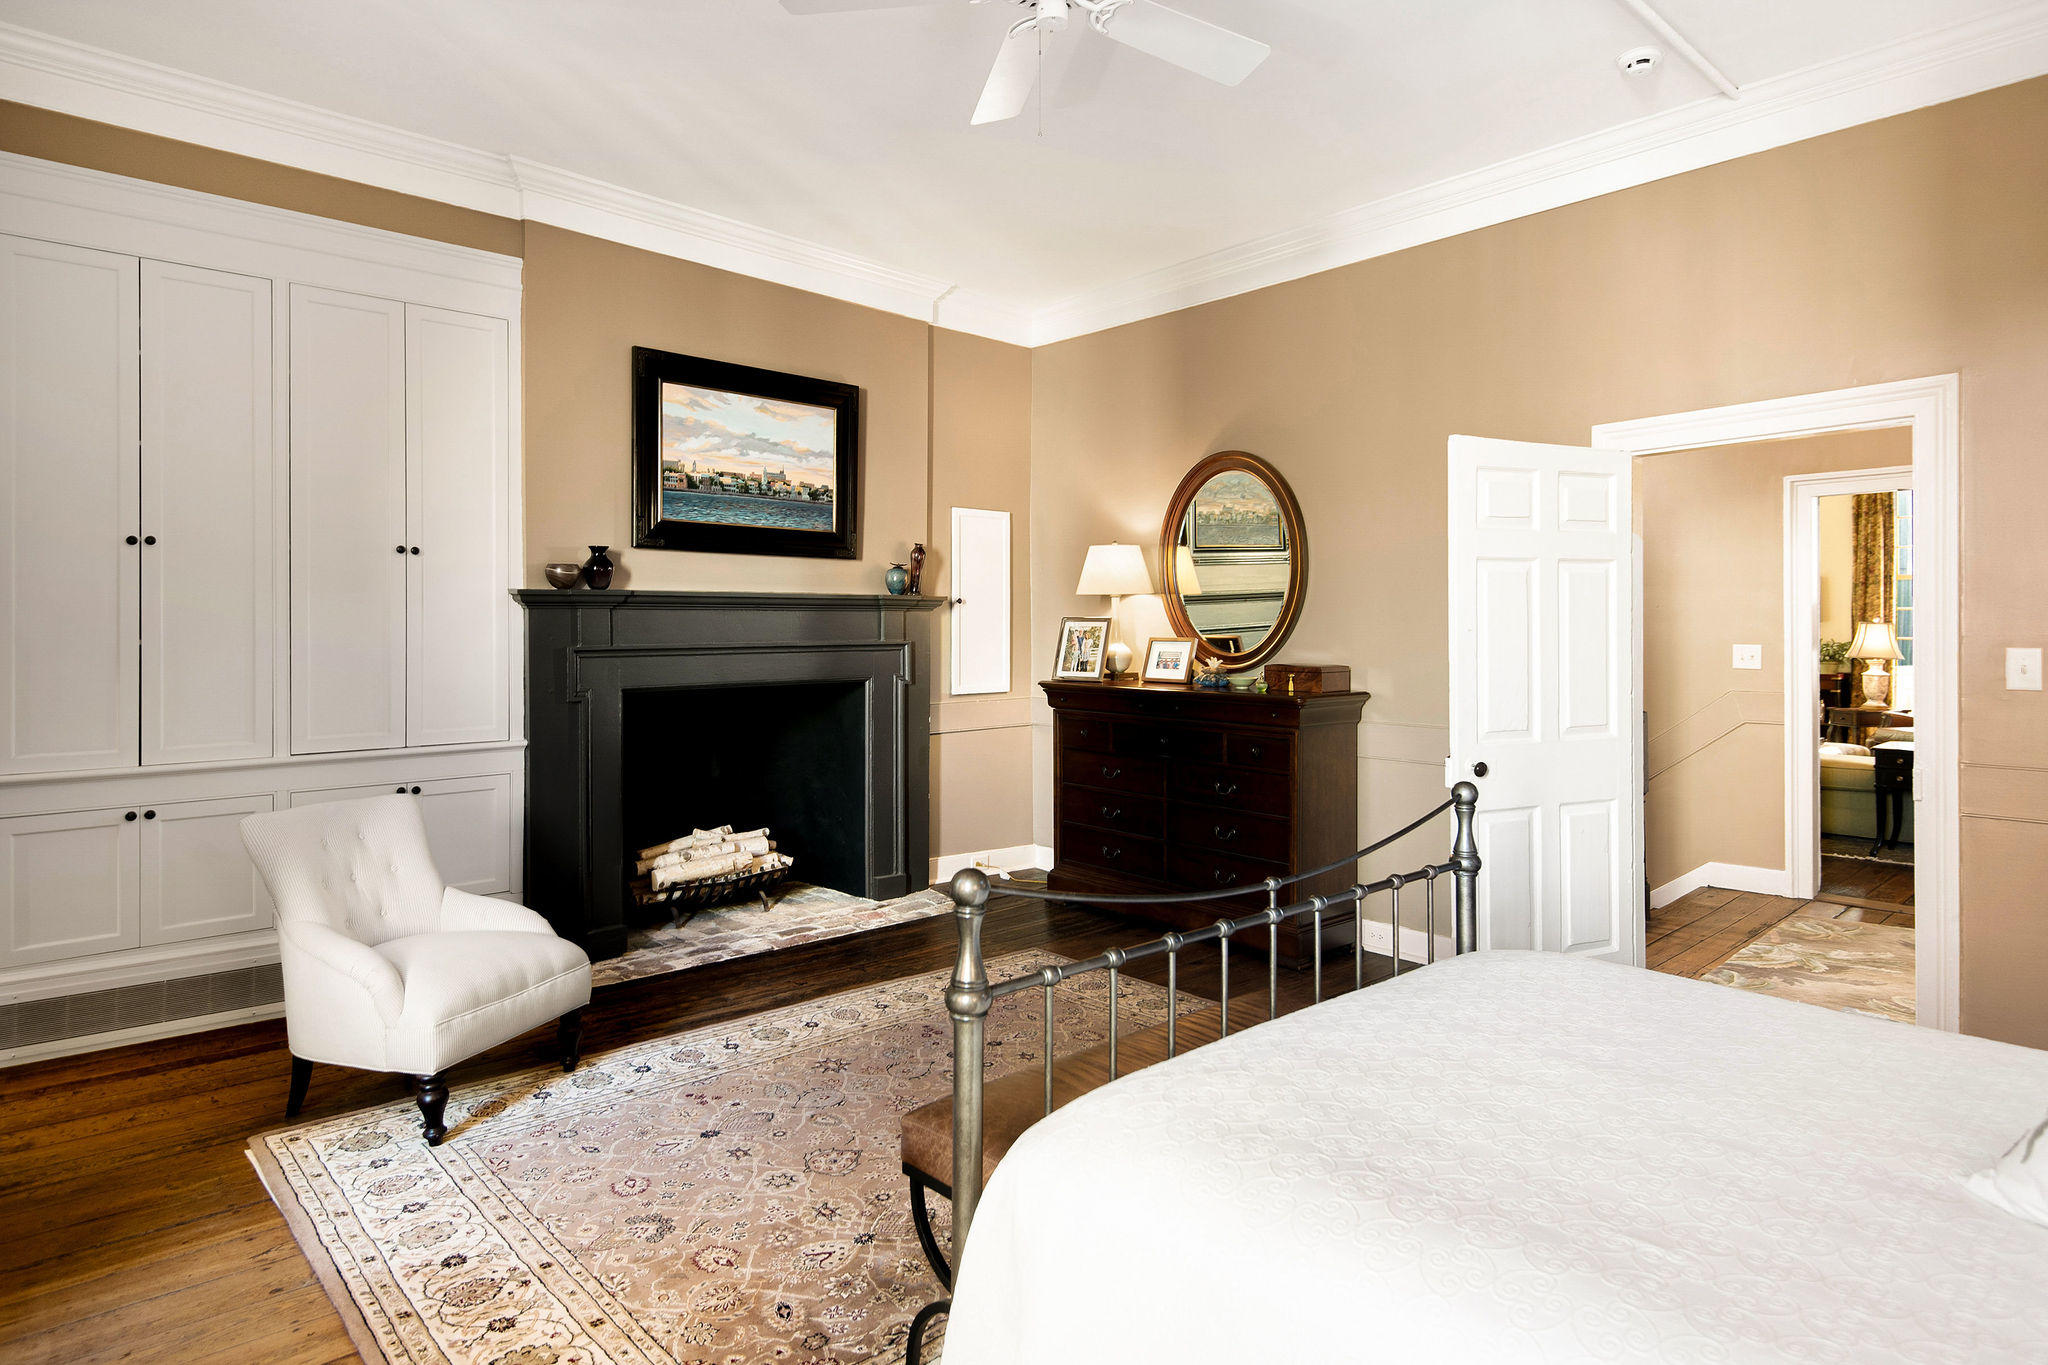 South of Broad Homes For Sale - 54 Tradd, Charleston, SC - 59